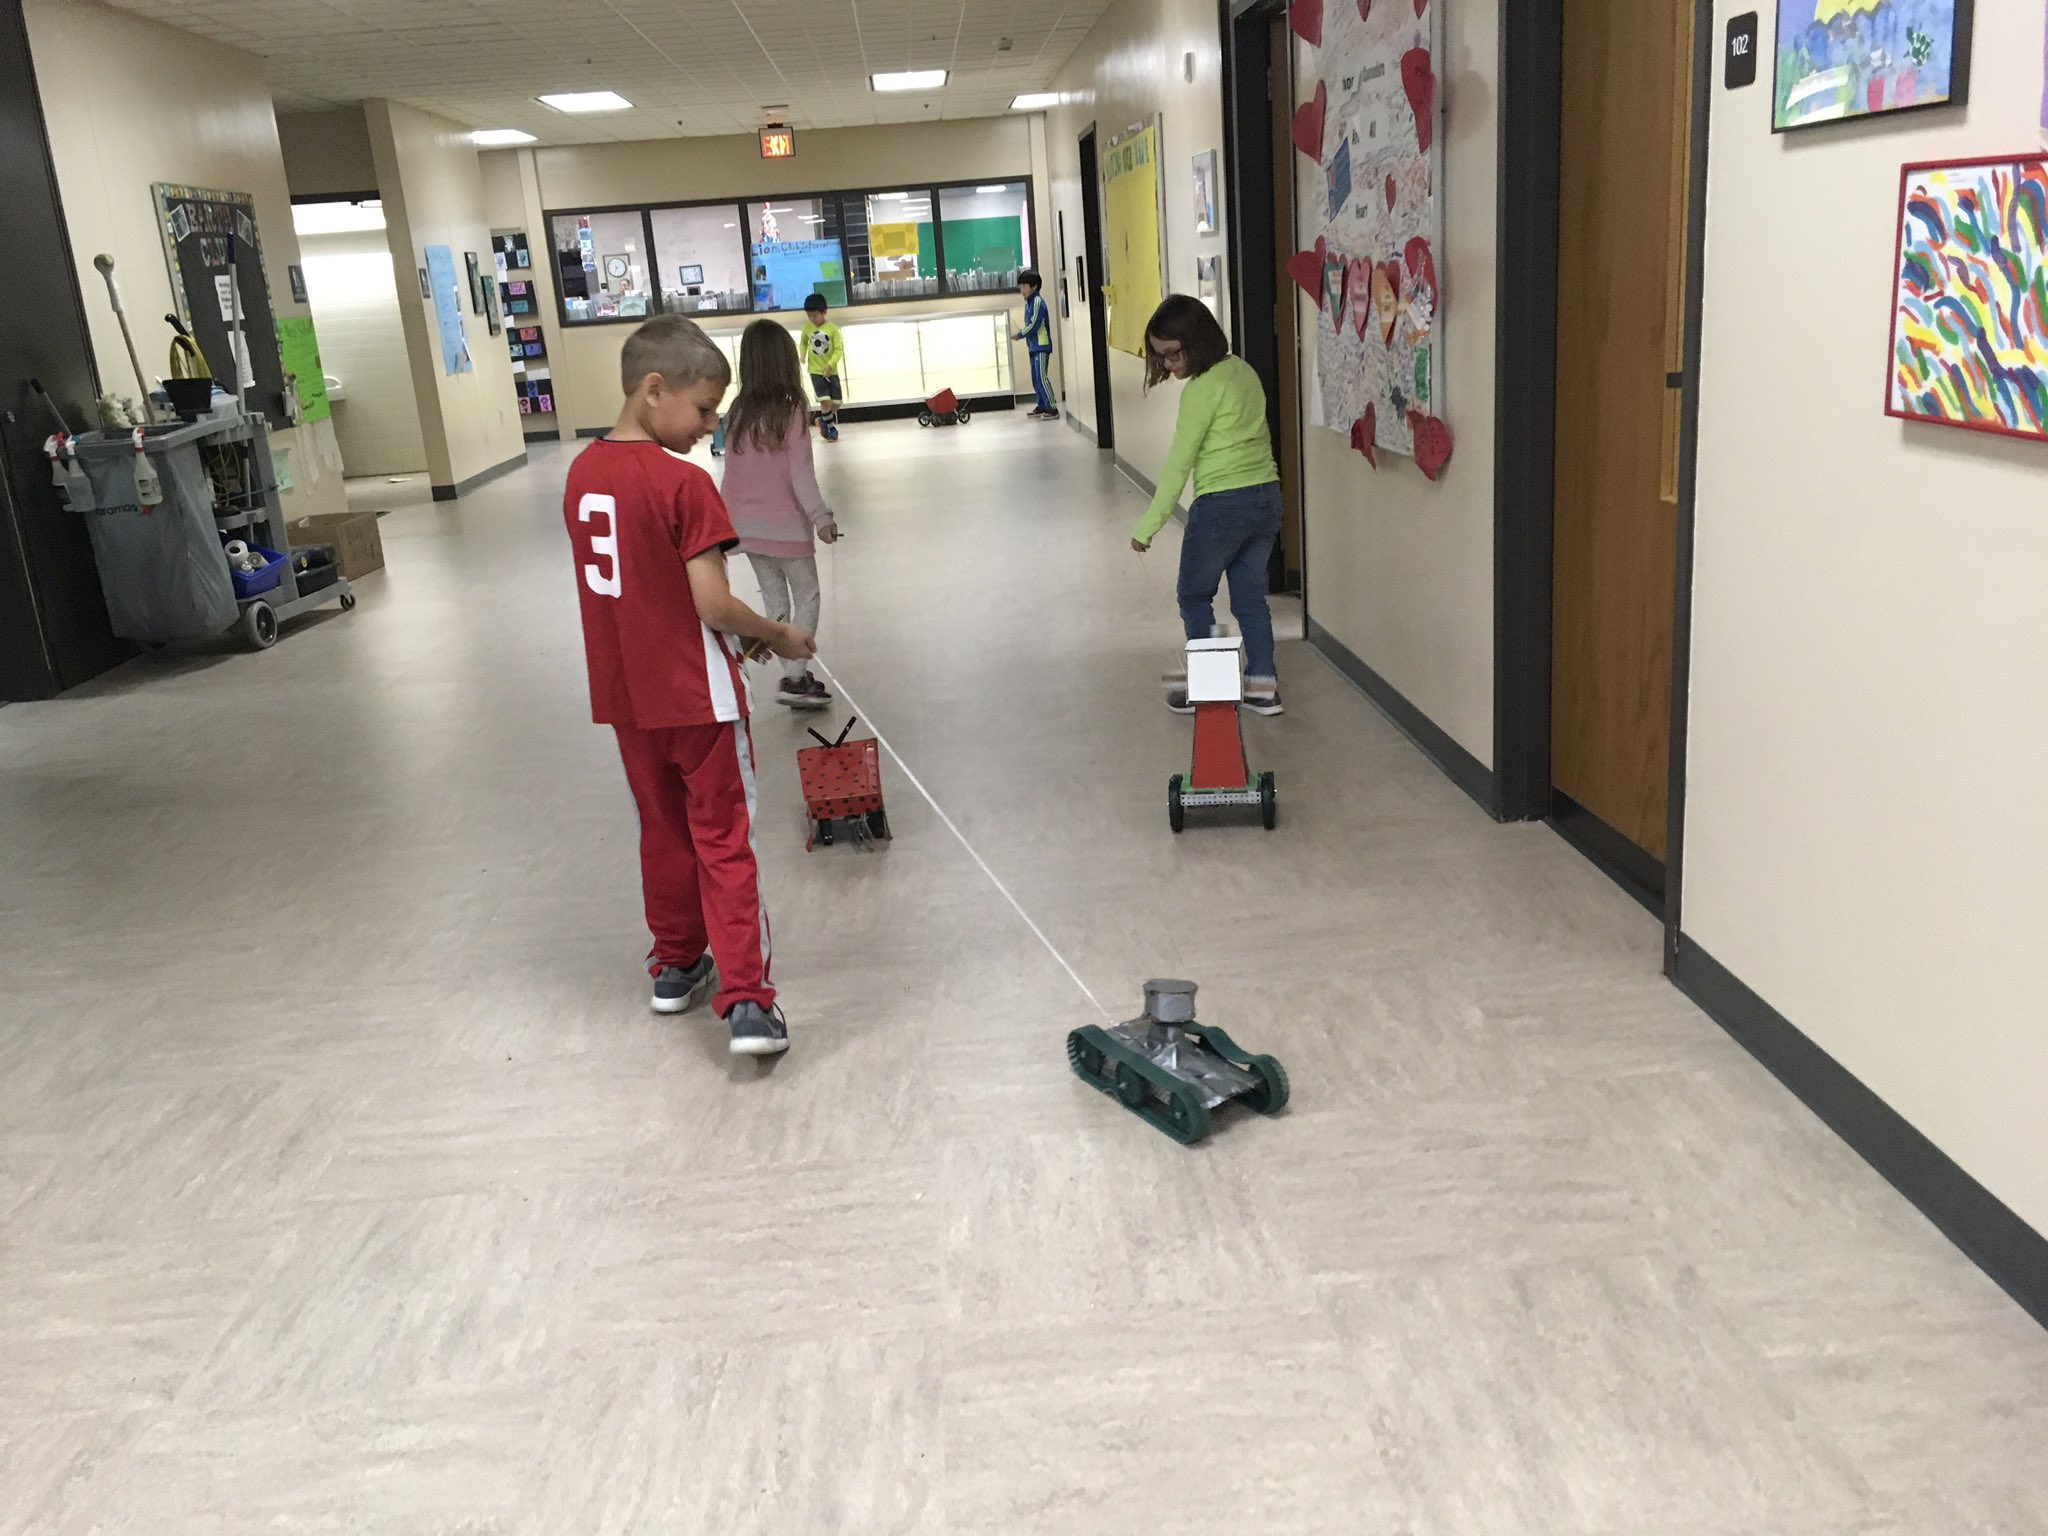 .@sceDCSD 1st graders test pull toys made by 8th grade STEM students @KarrerMS. #theDublinDifference https://t.co/r7ZGVdfZK3